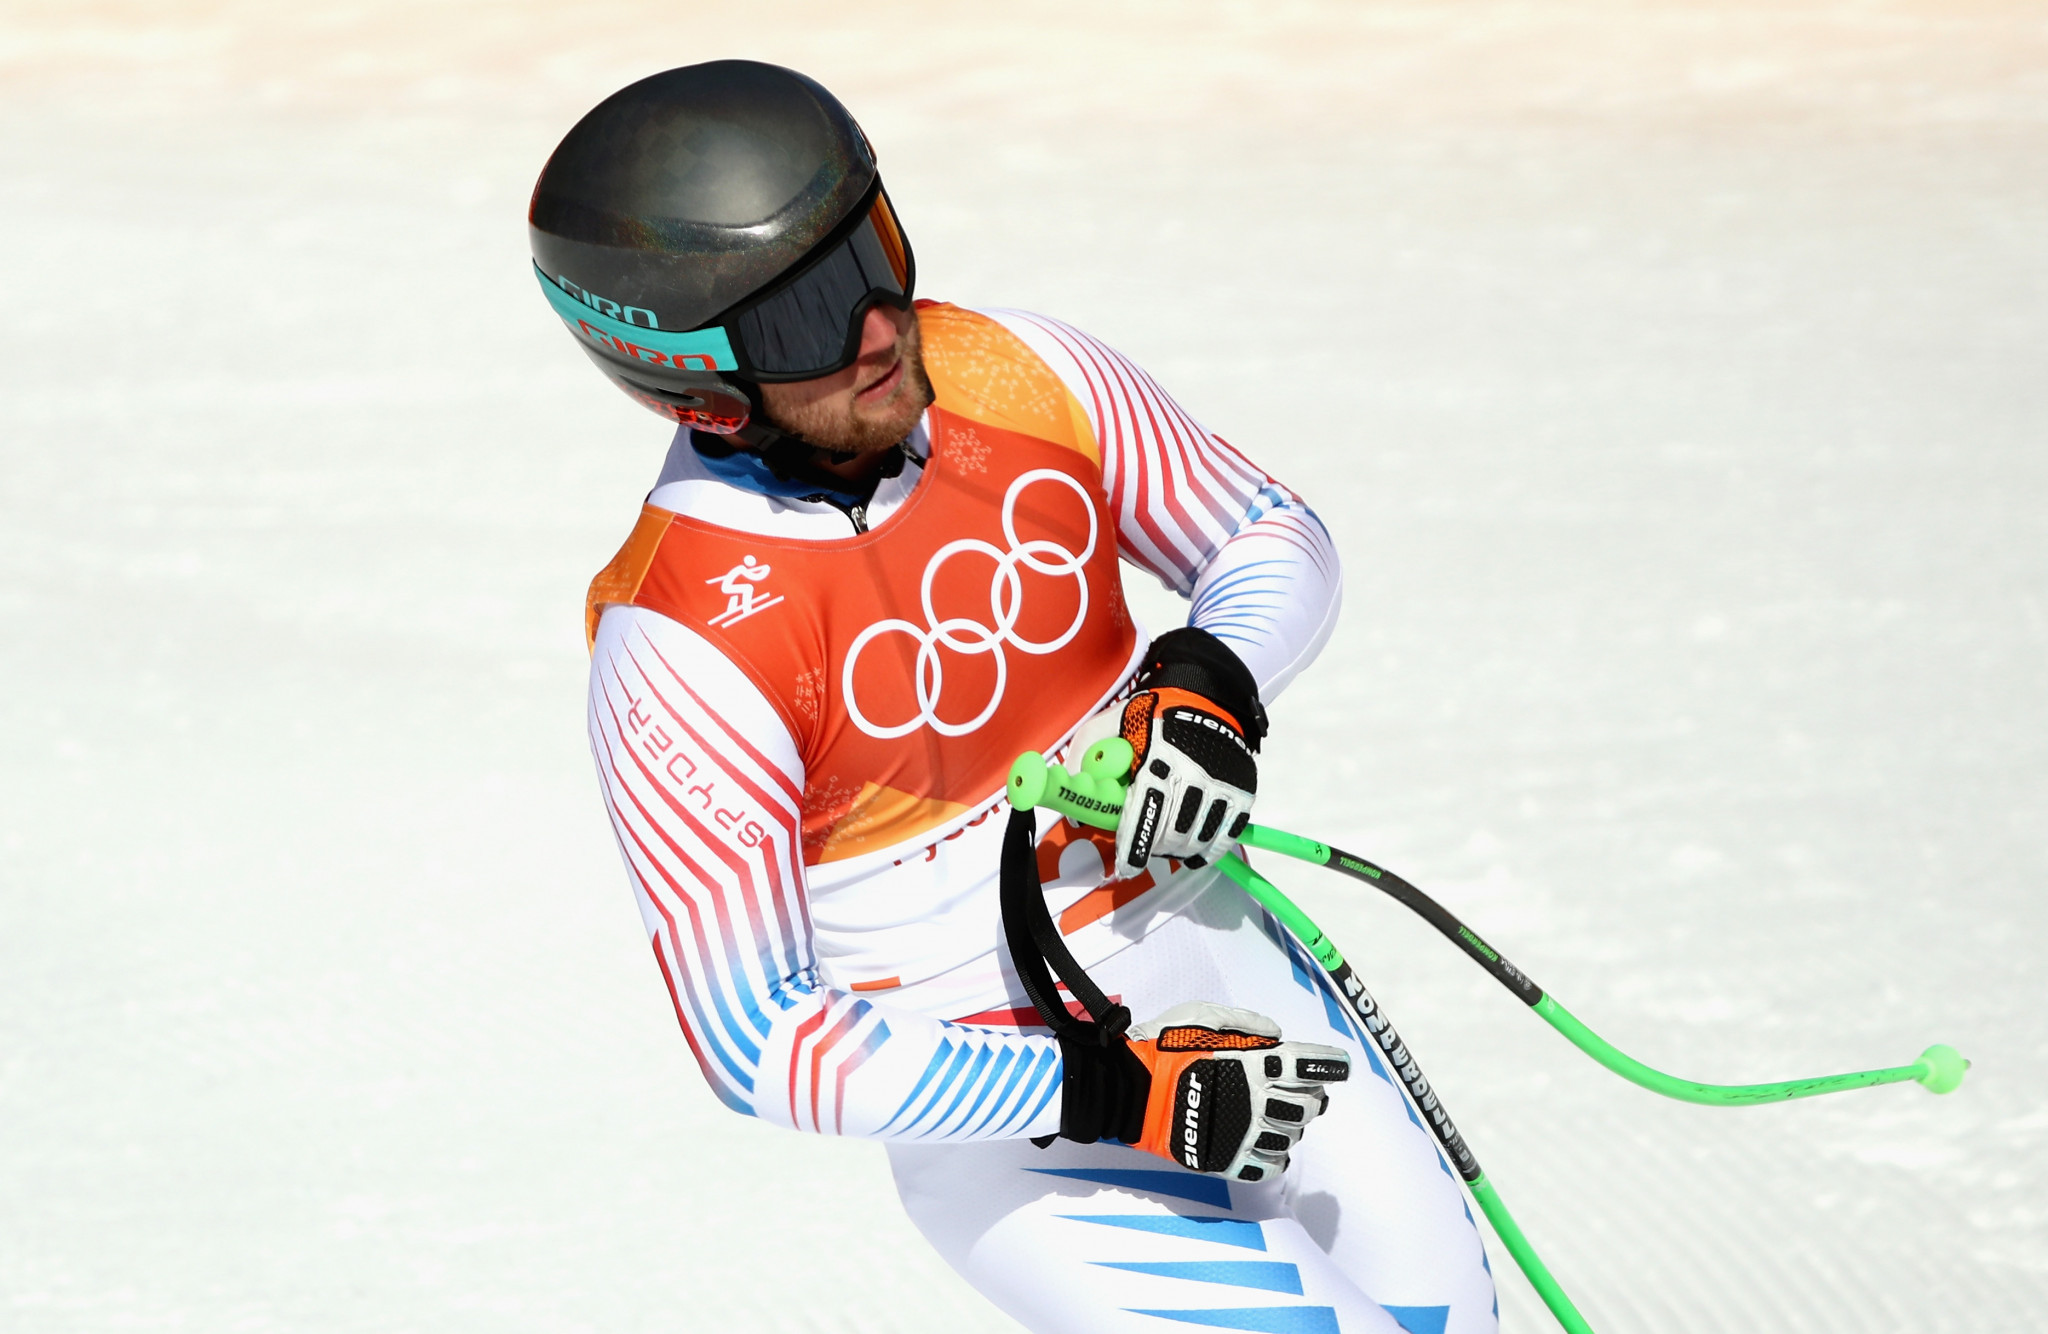 Two-time Olympic medallist Weibrecht to run university Alpine skiing programme